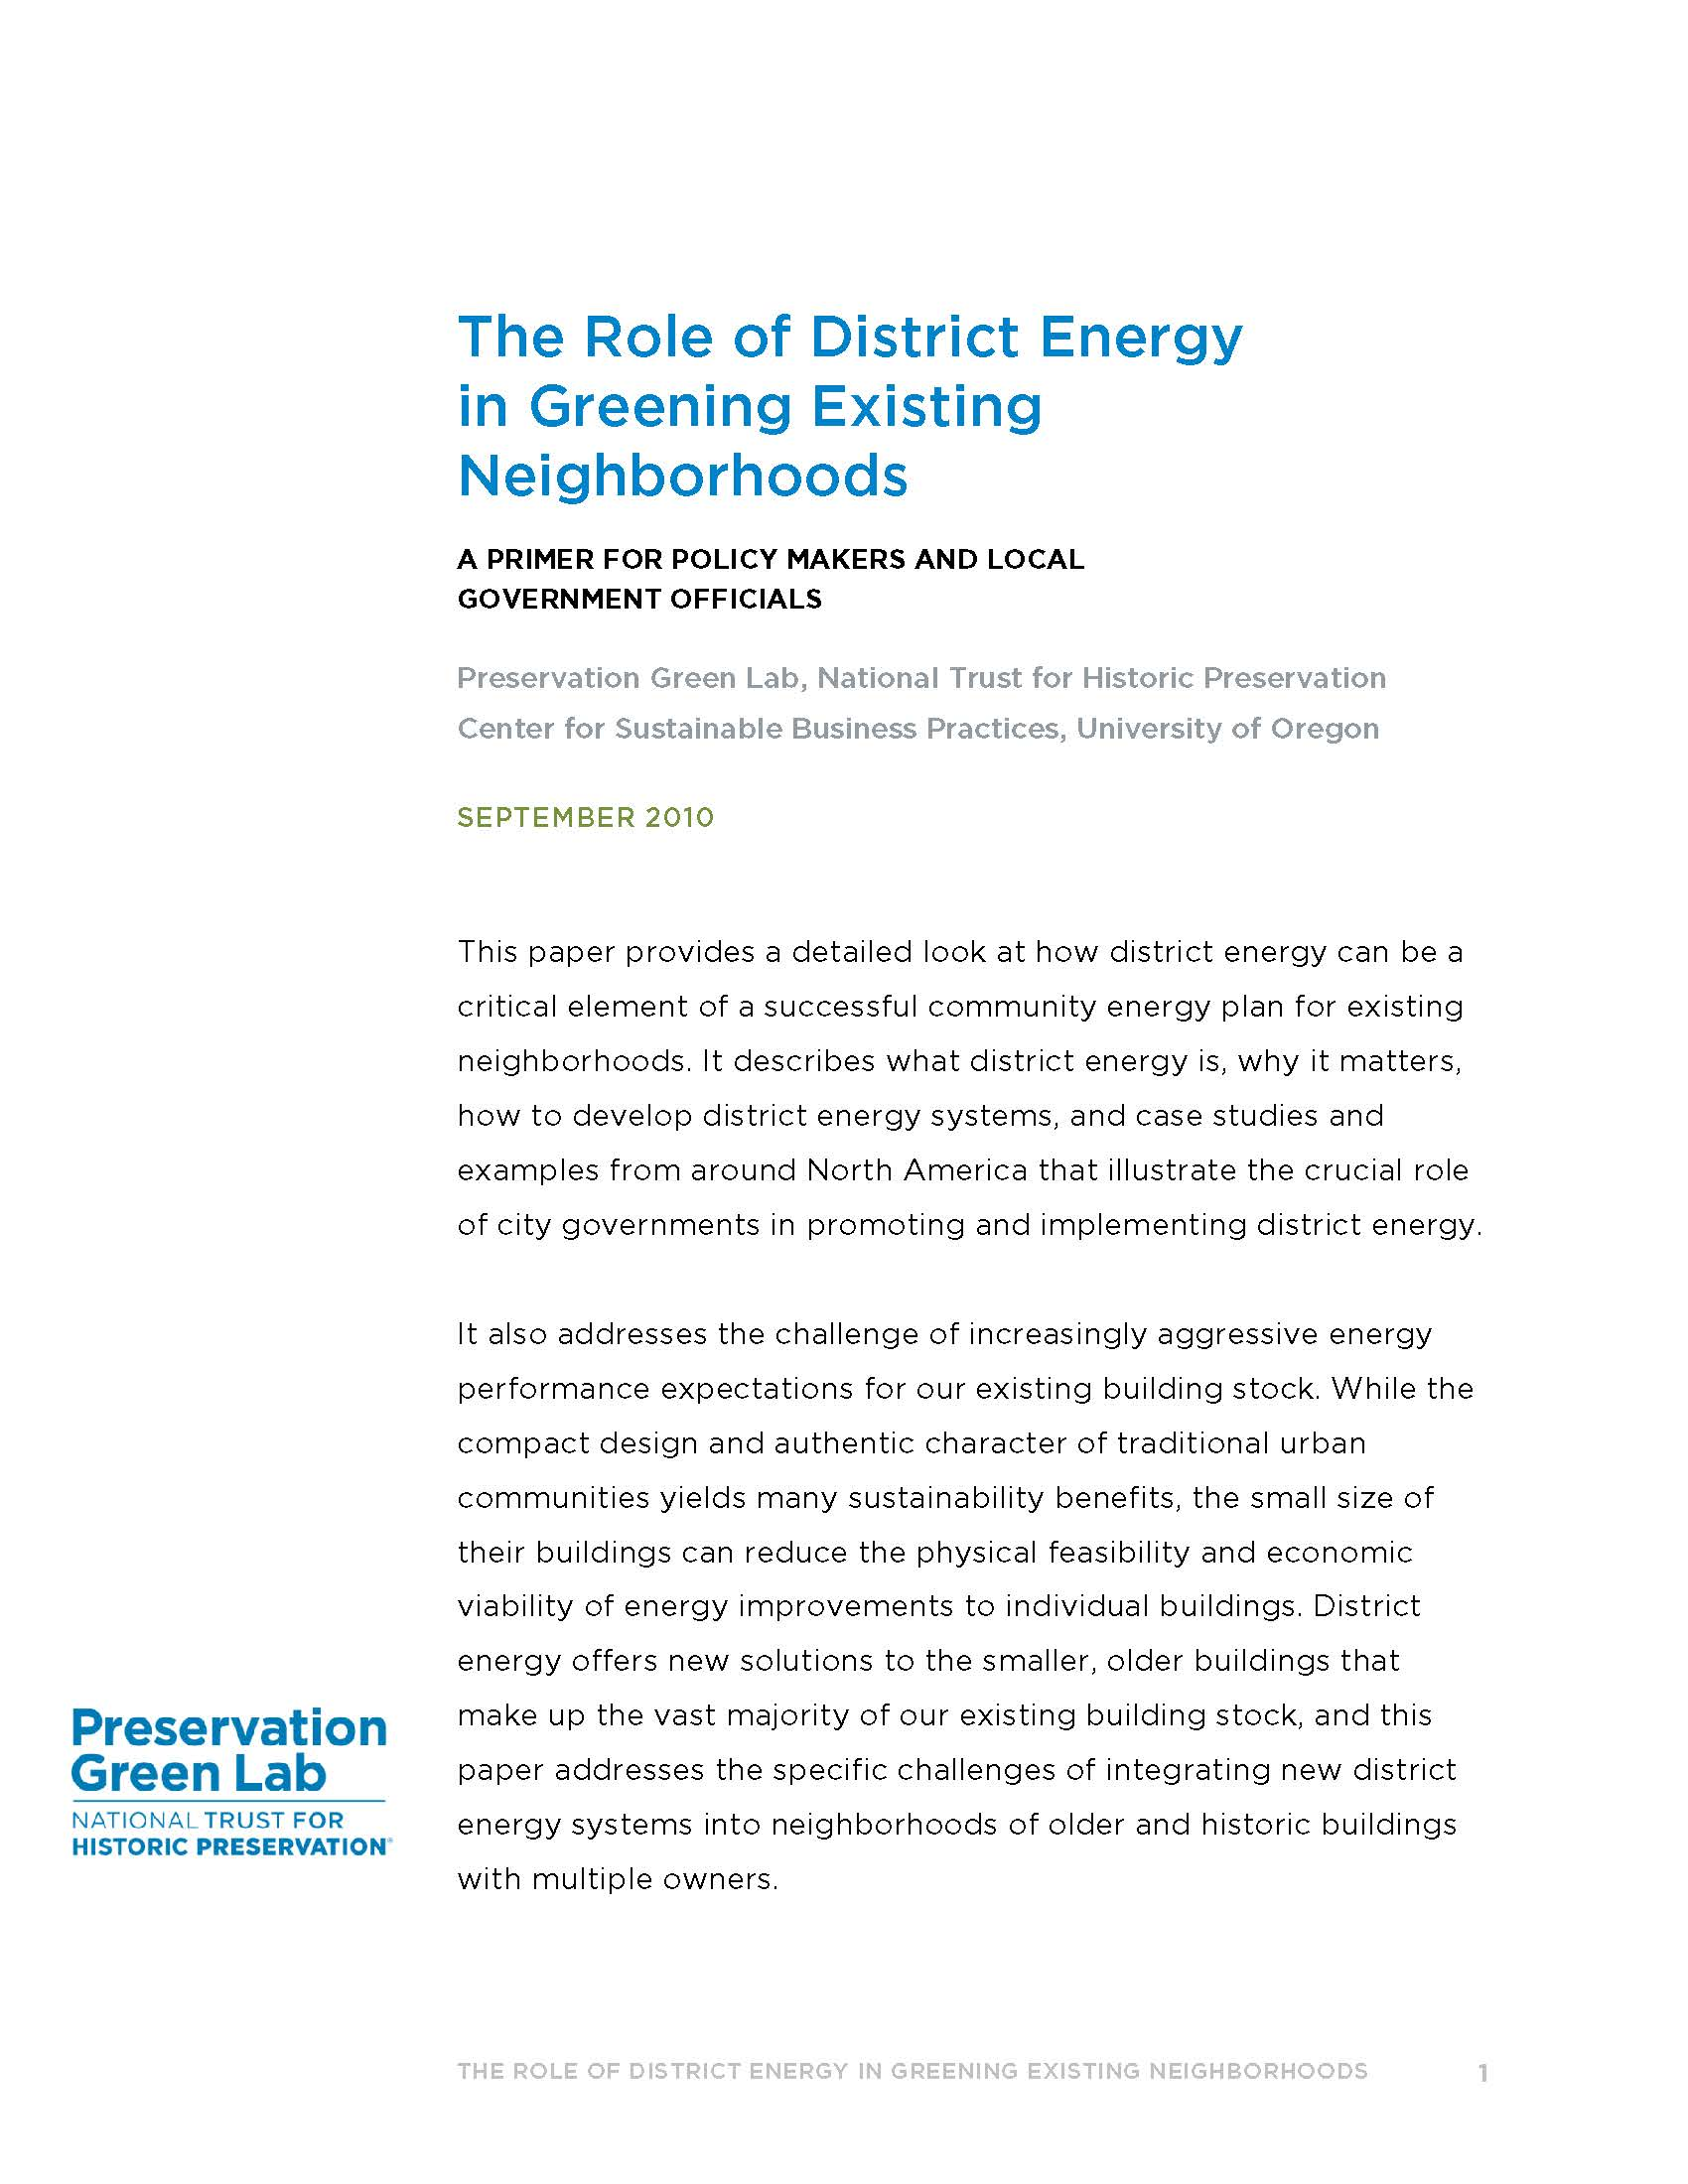 District Energy